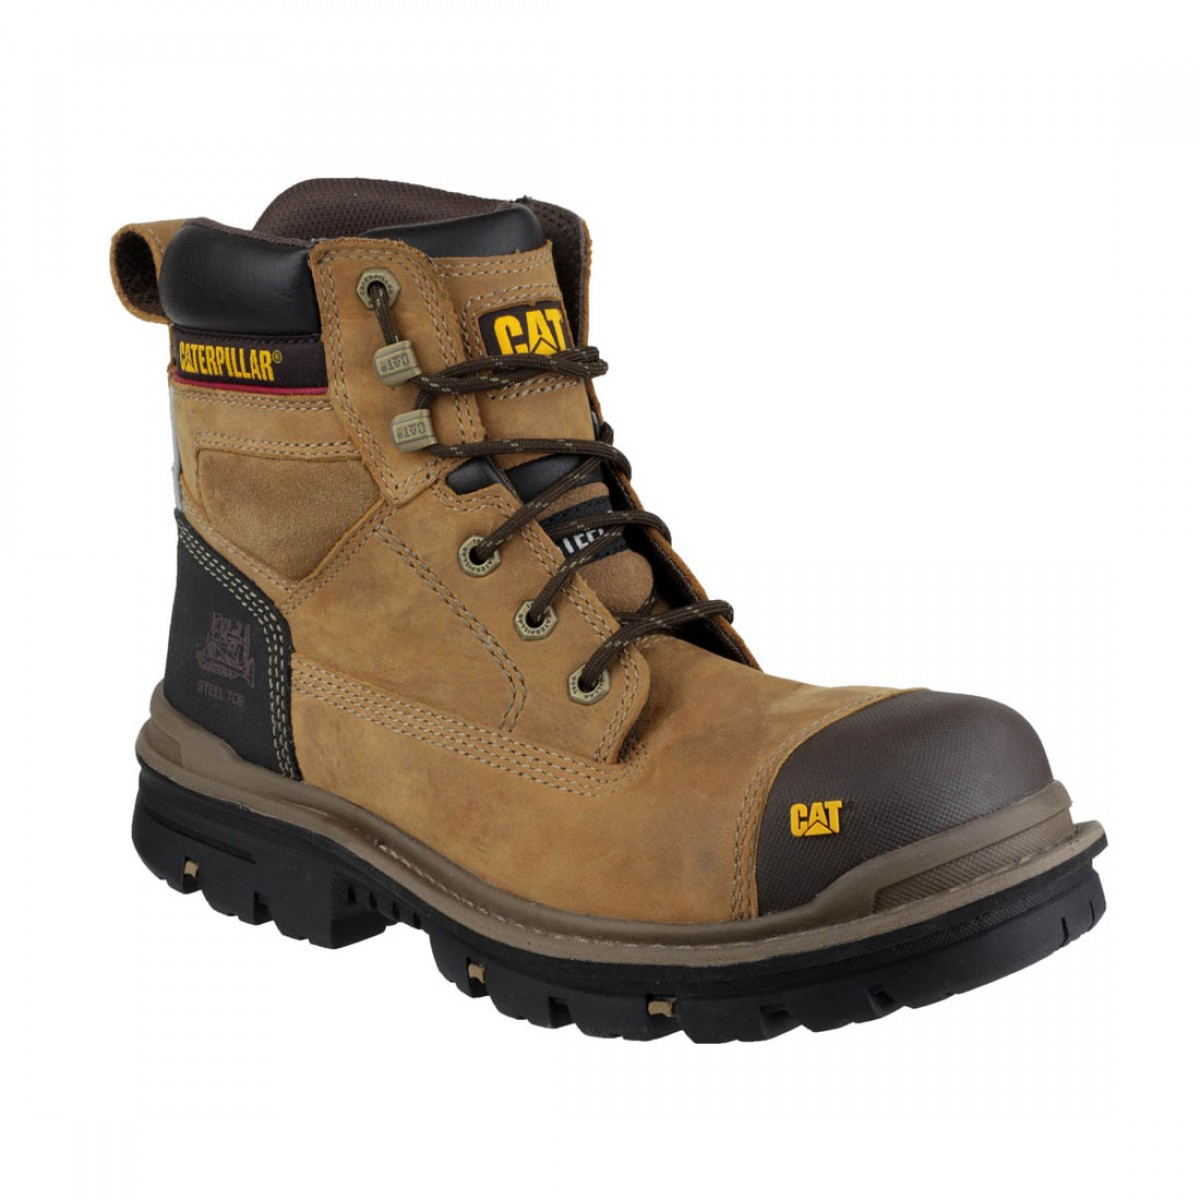 3e43044729f8 Caterpillar Dark Brown Gravel S3 Water Resistant Mens Safety Boots